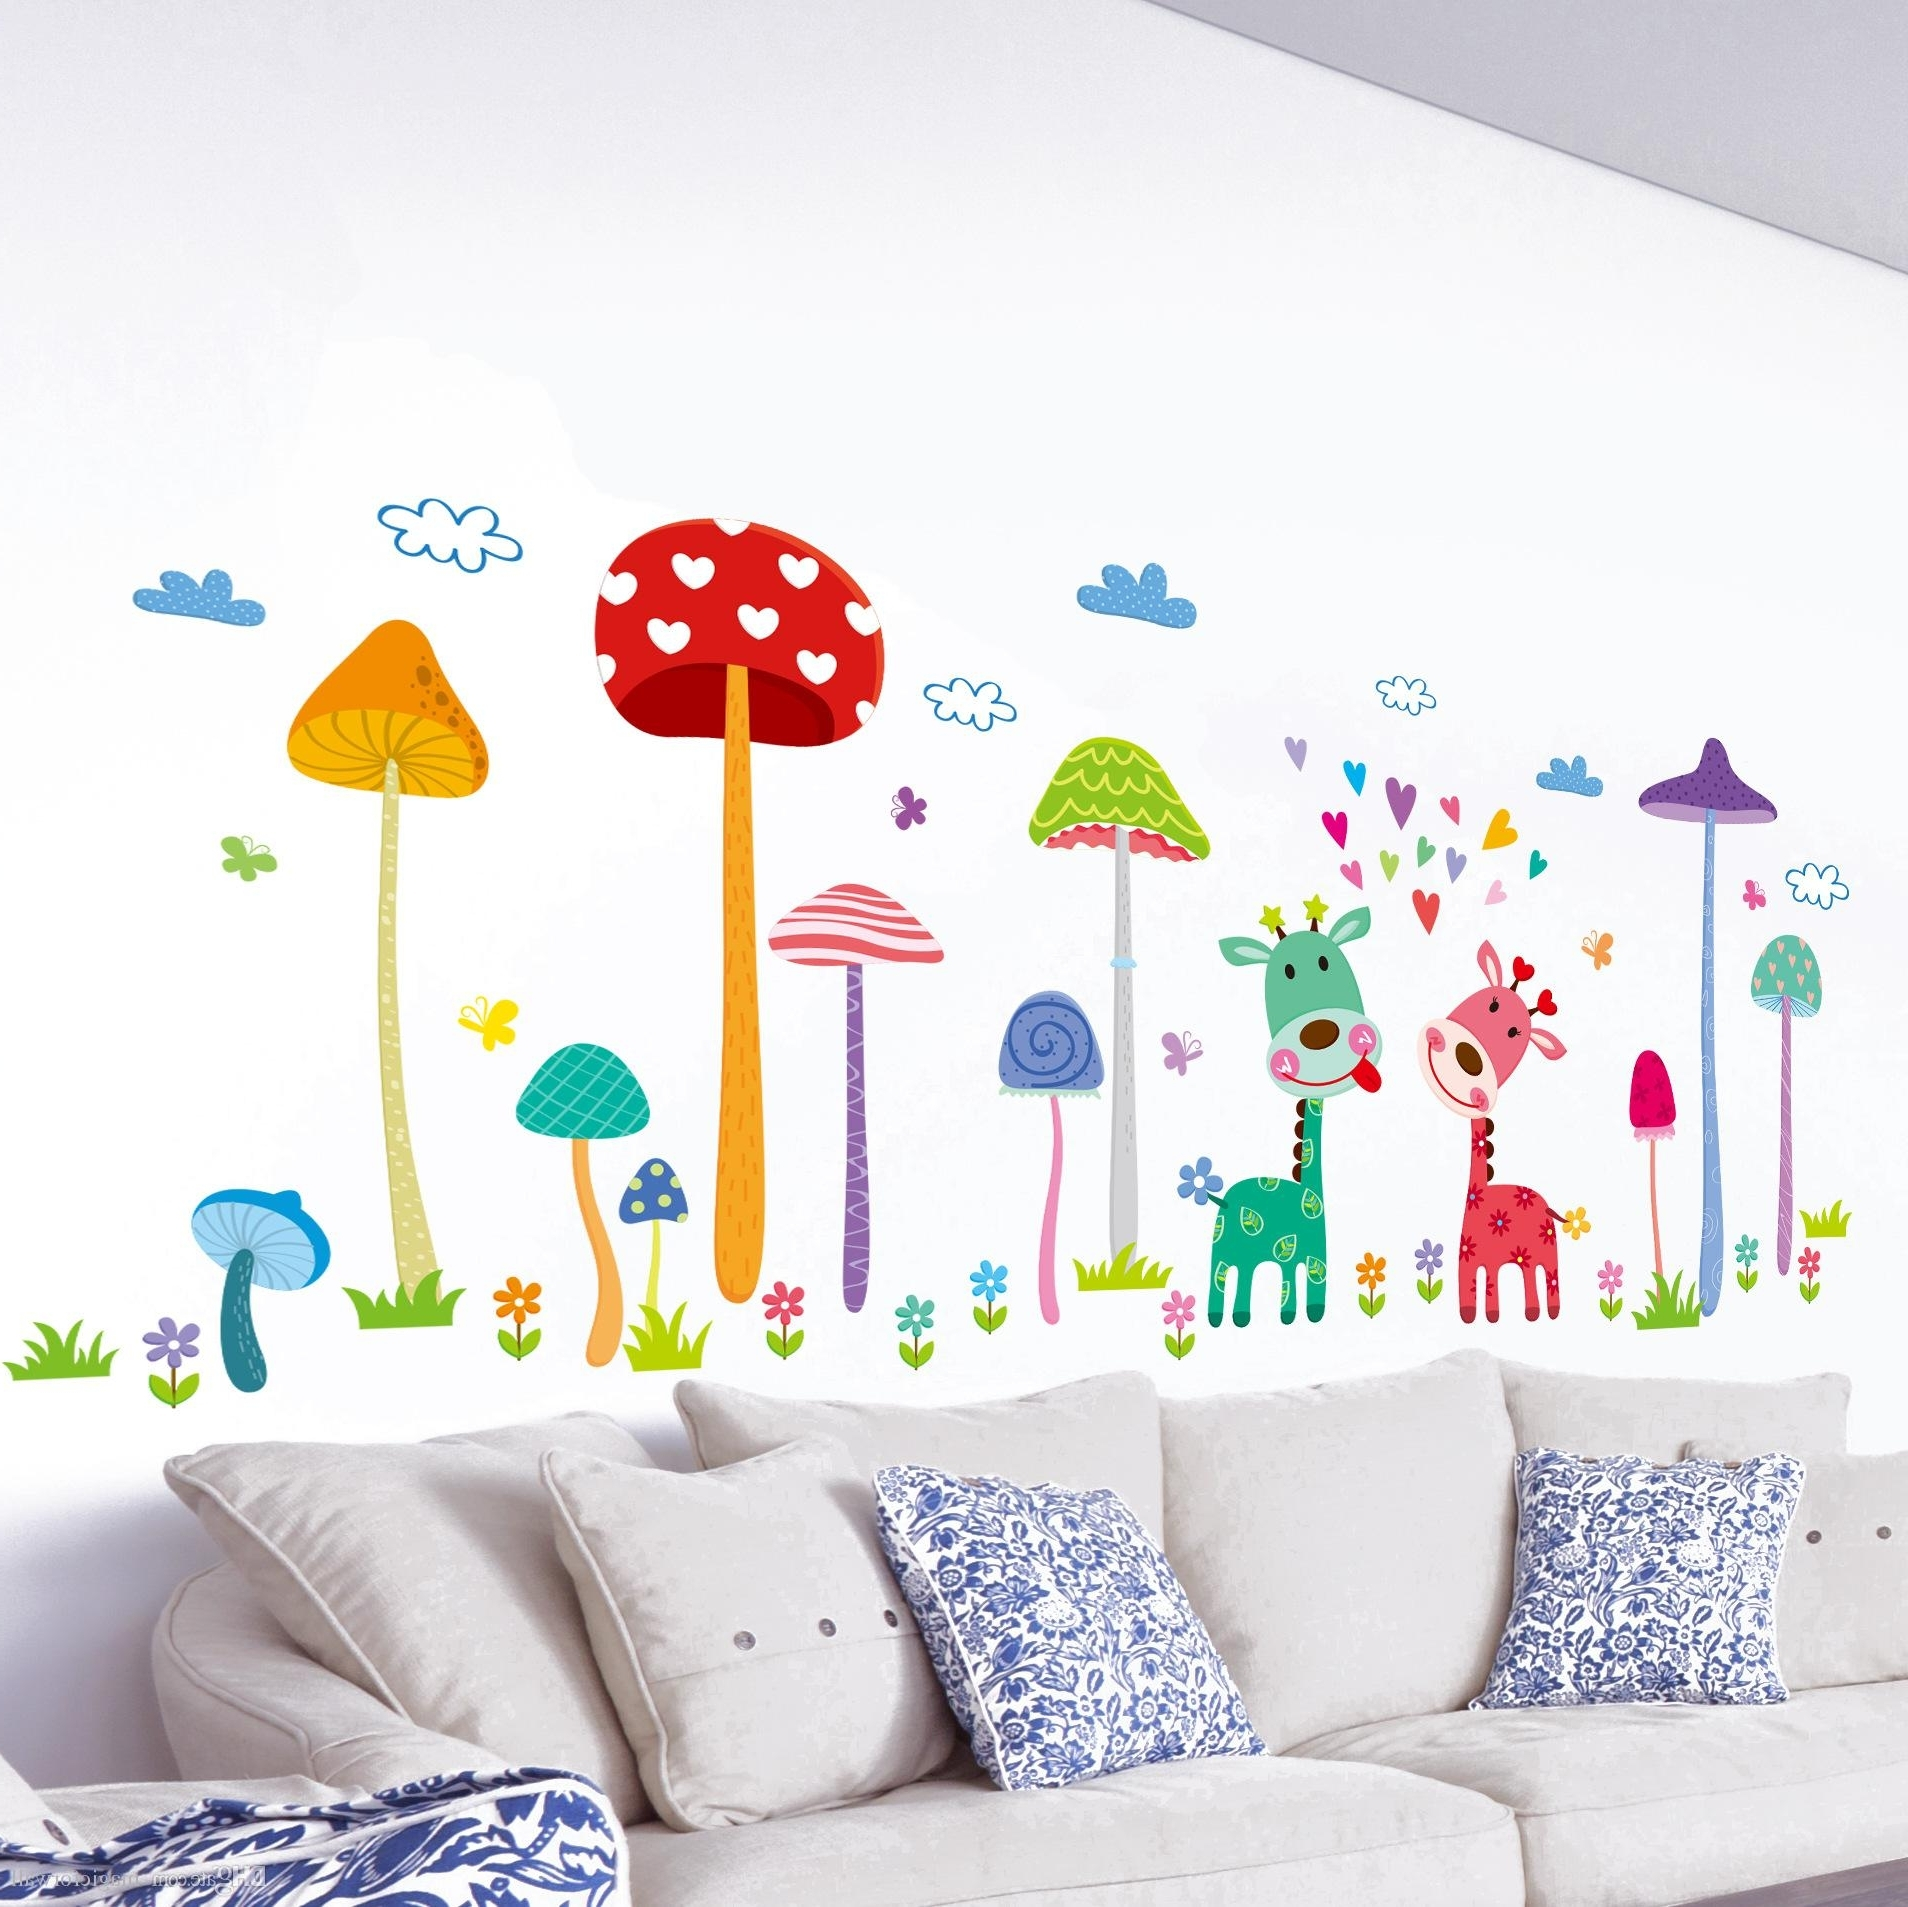 Home Wall Art For Most Current Forest Mushroom Deer Animals Home Wall Art Mural Decor Kids Babies (Gallery 17 of 20)